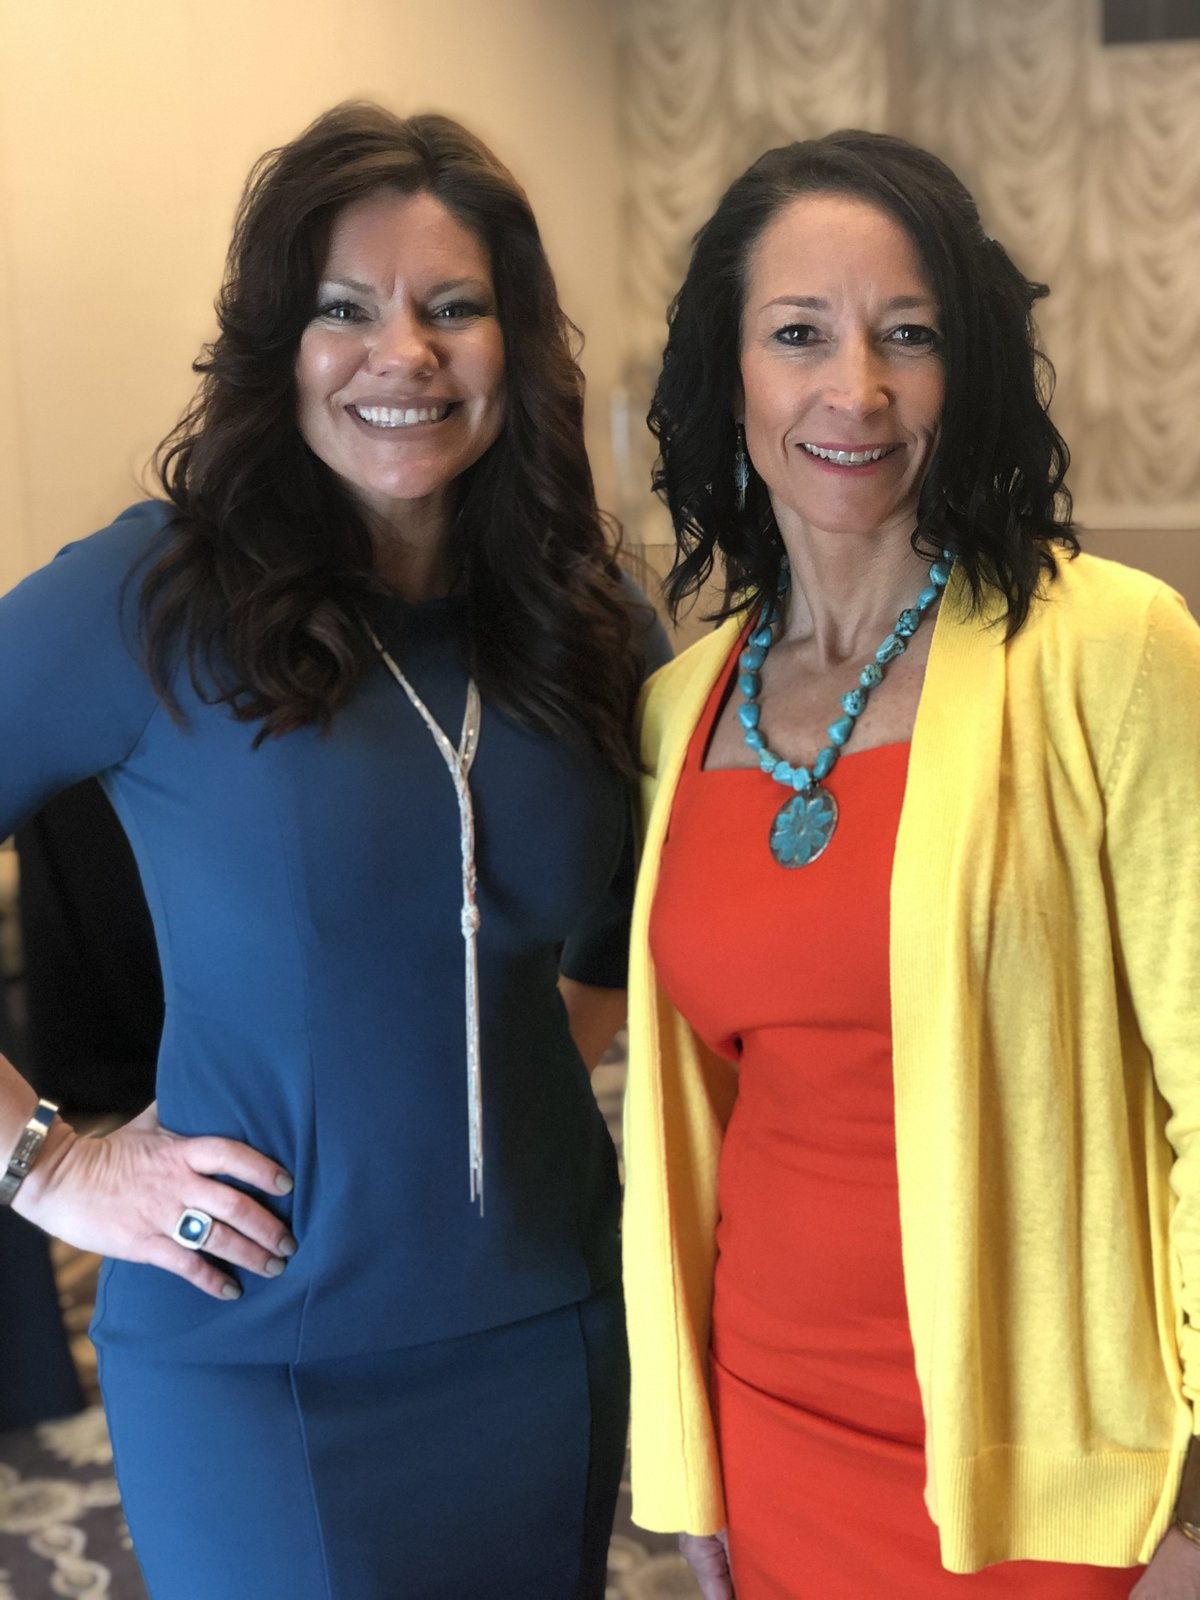 Heather Crider and Dr. Heidi Toxic Relationship Event 2019